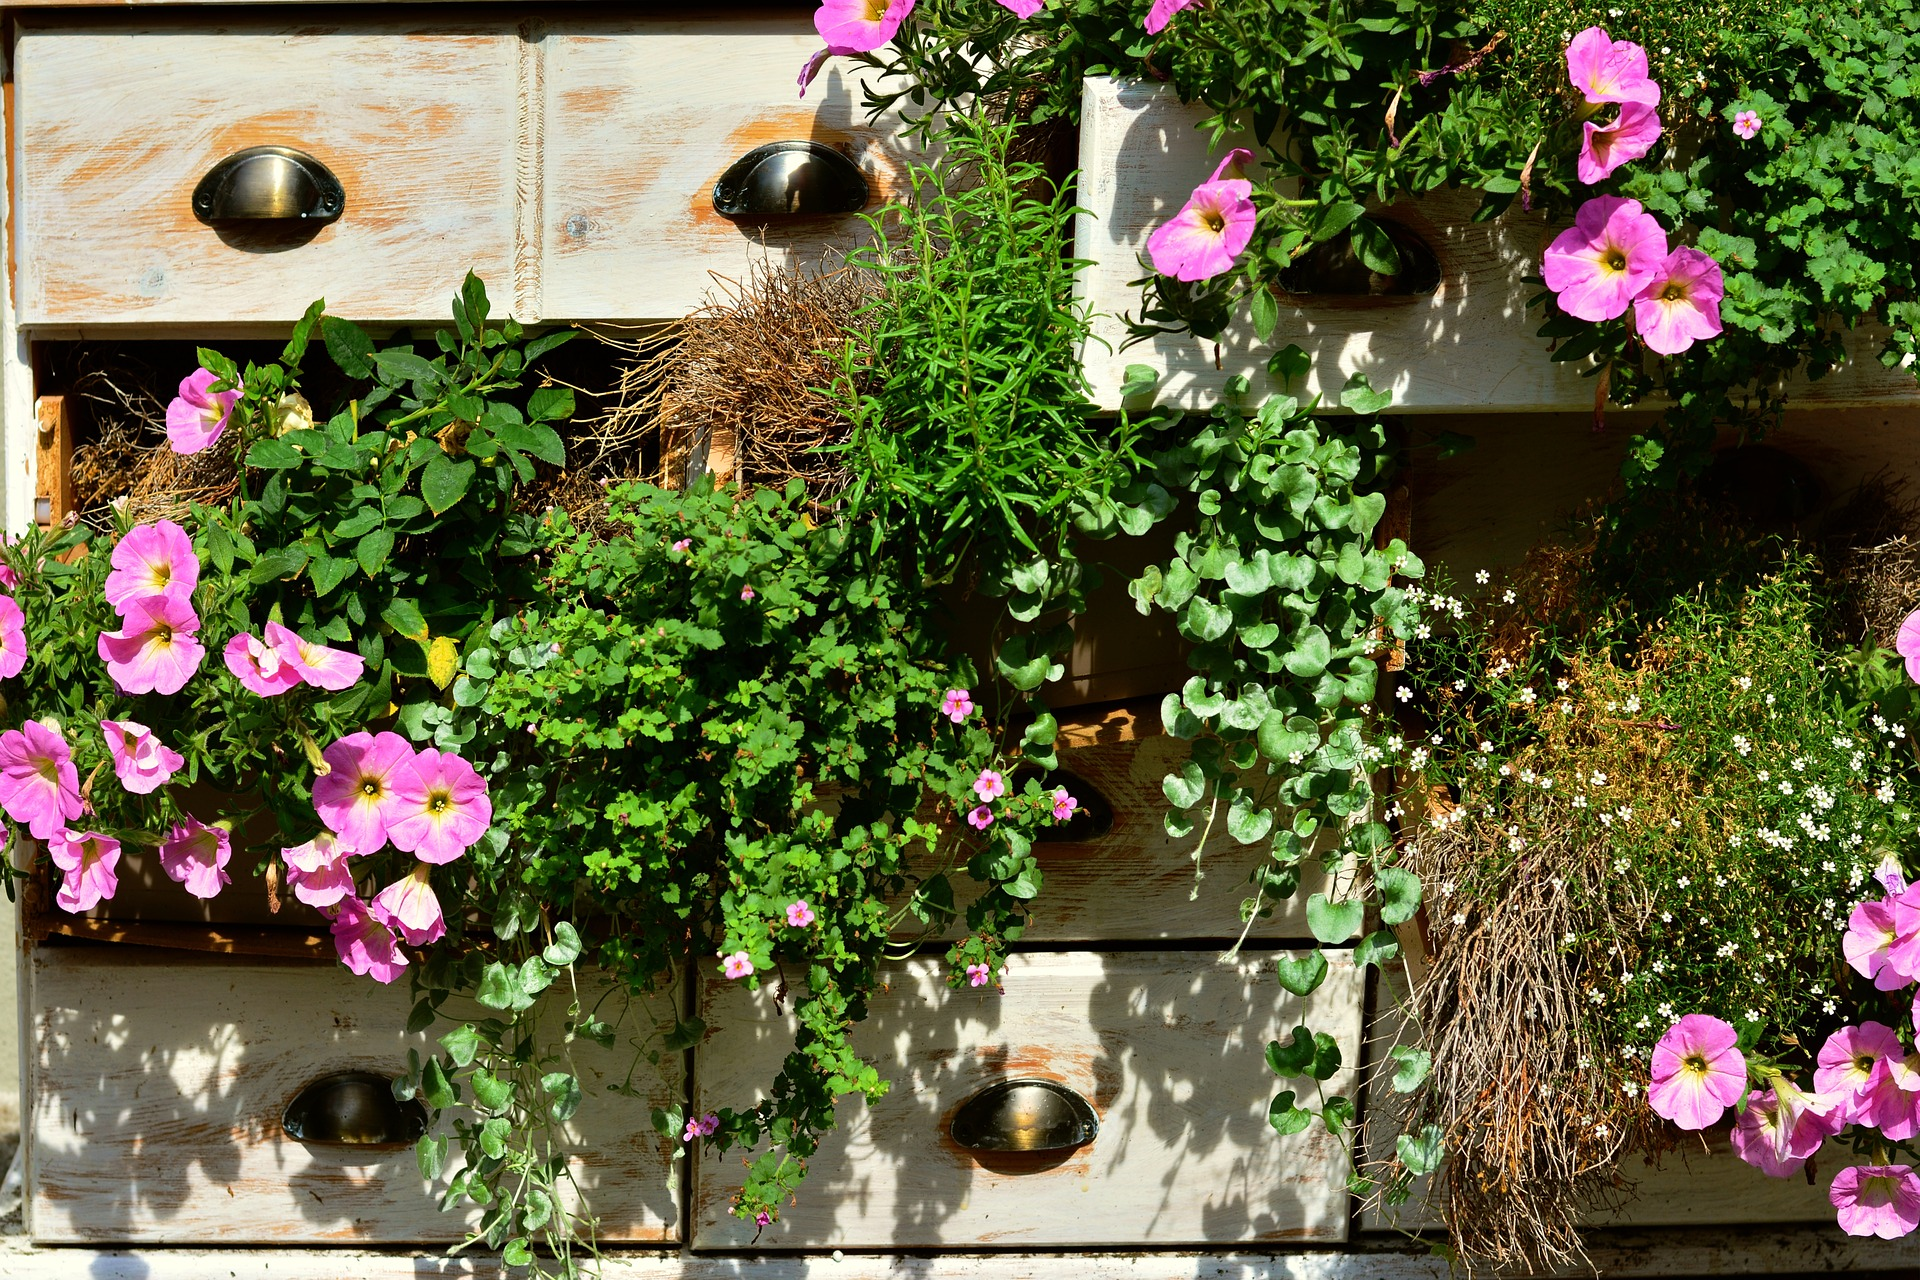 Drawers used as planters with petunias hanging from them